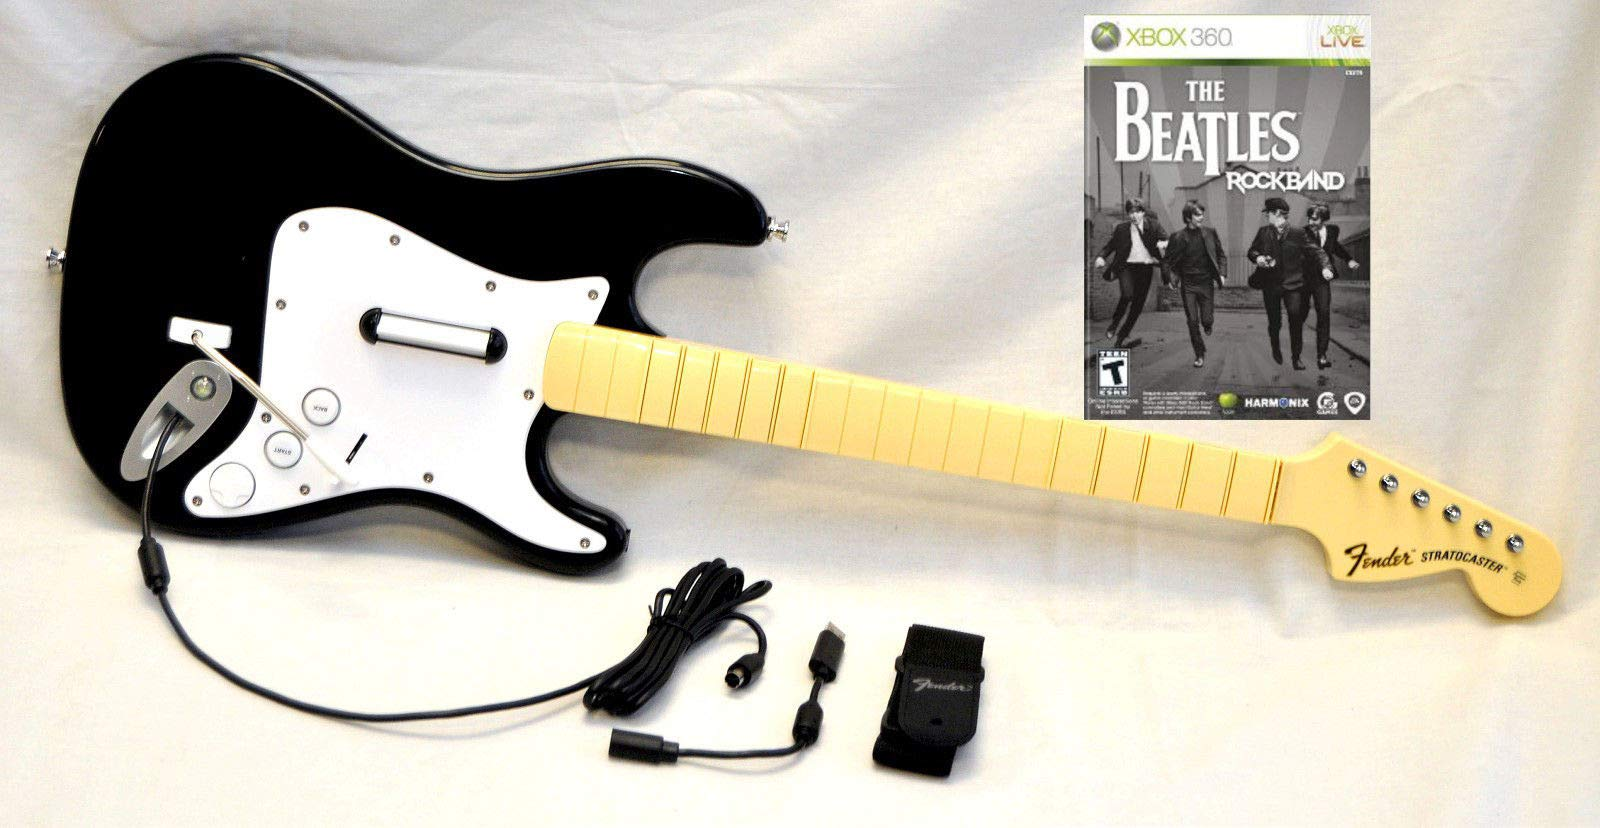 OEM Rock Band 1 XBox 360 Wired Fender Guitar with NEW BEATLES Video Game Kit Set Bundle